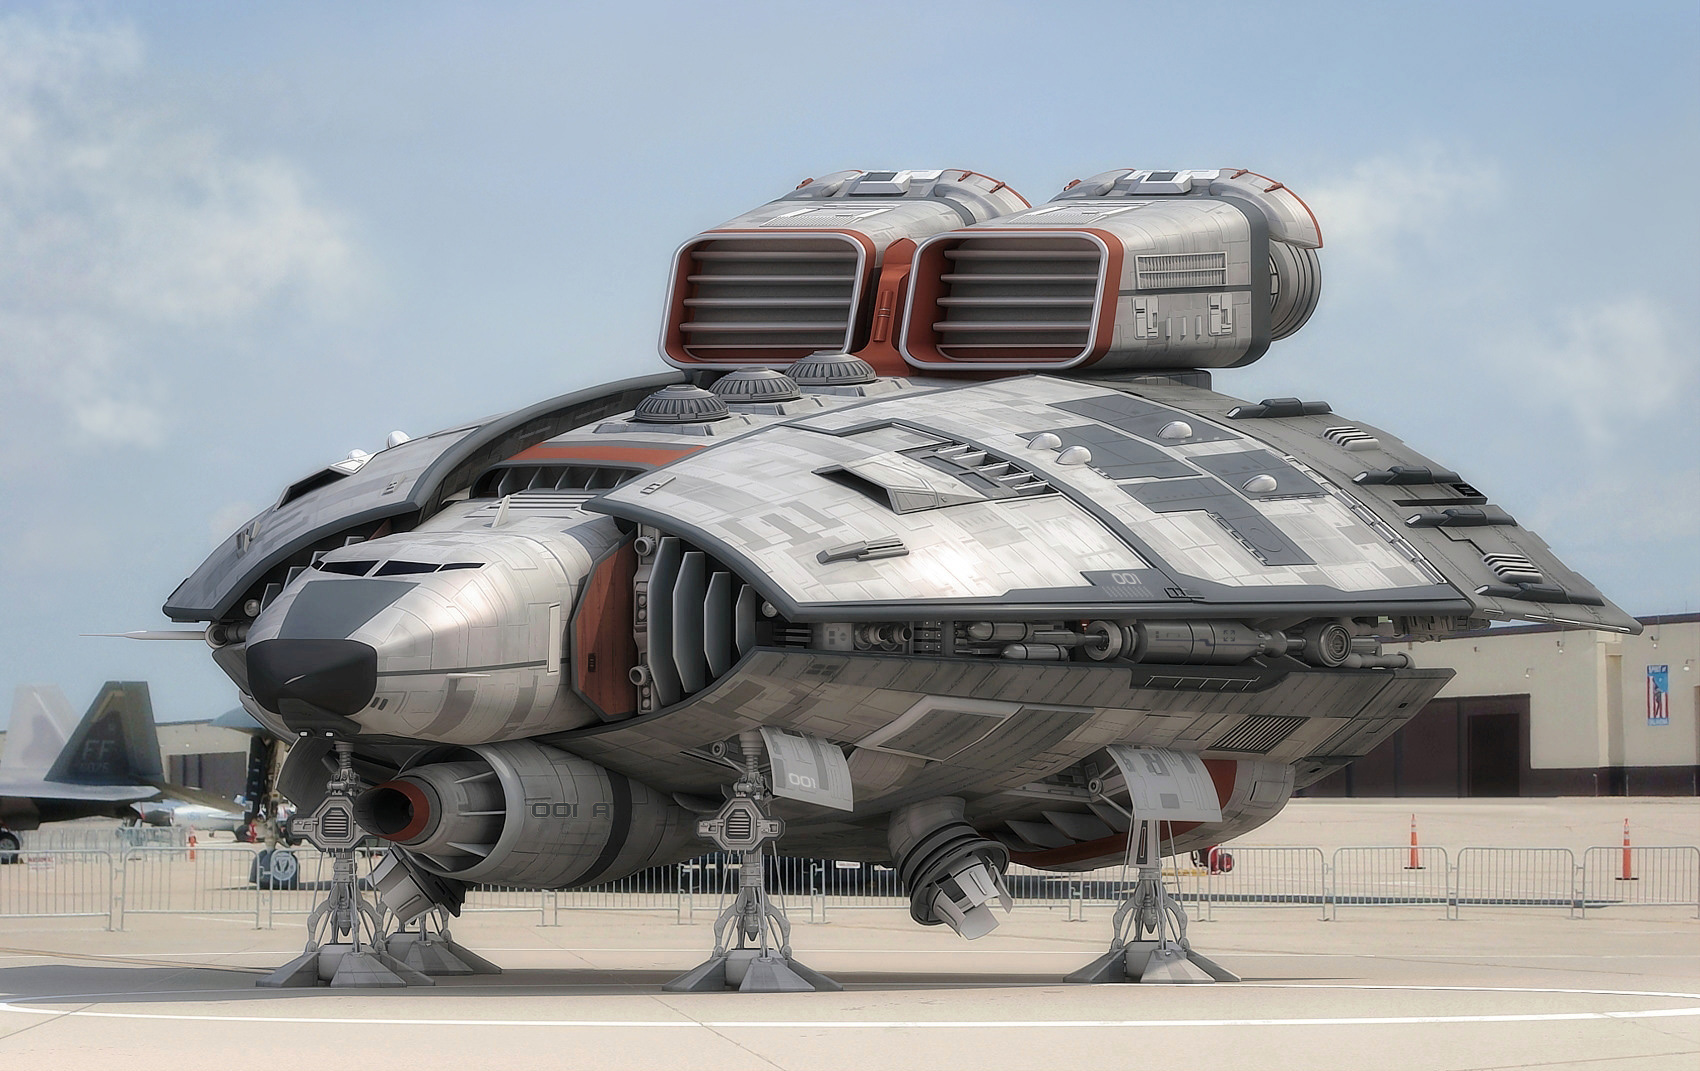 concept ships: Spaceships by Michael Daglas